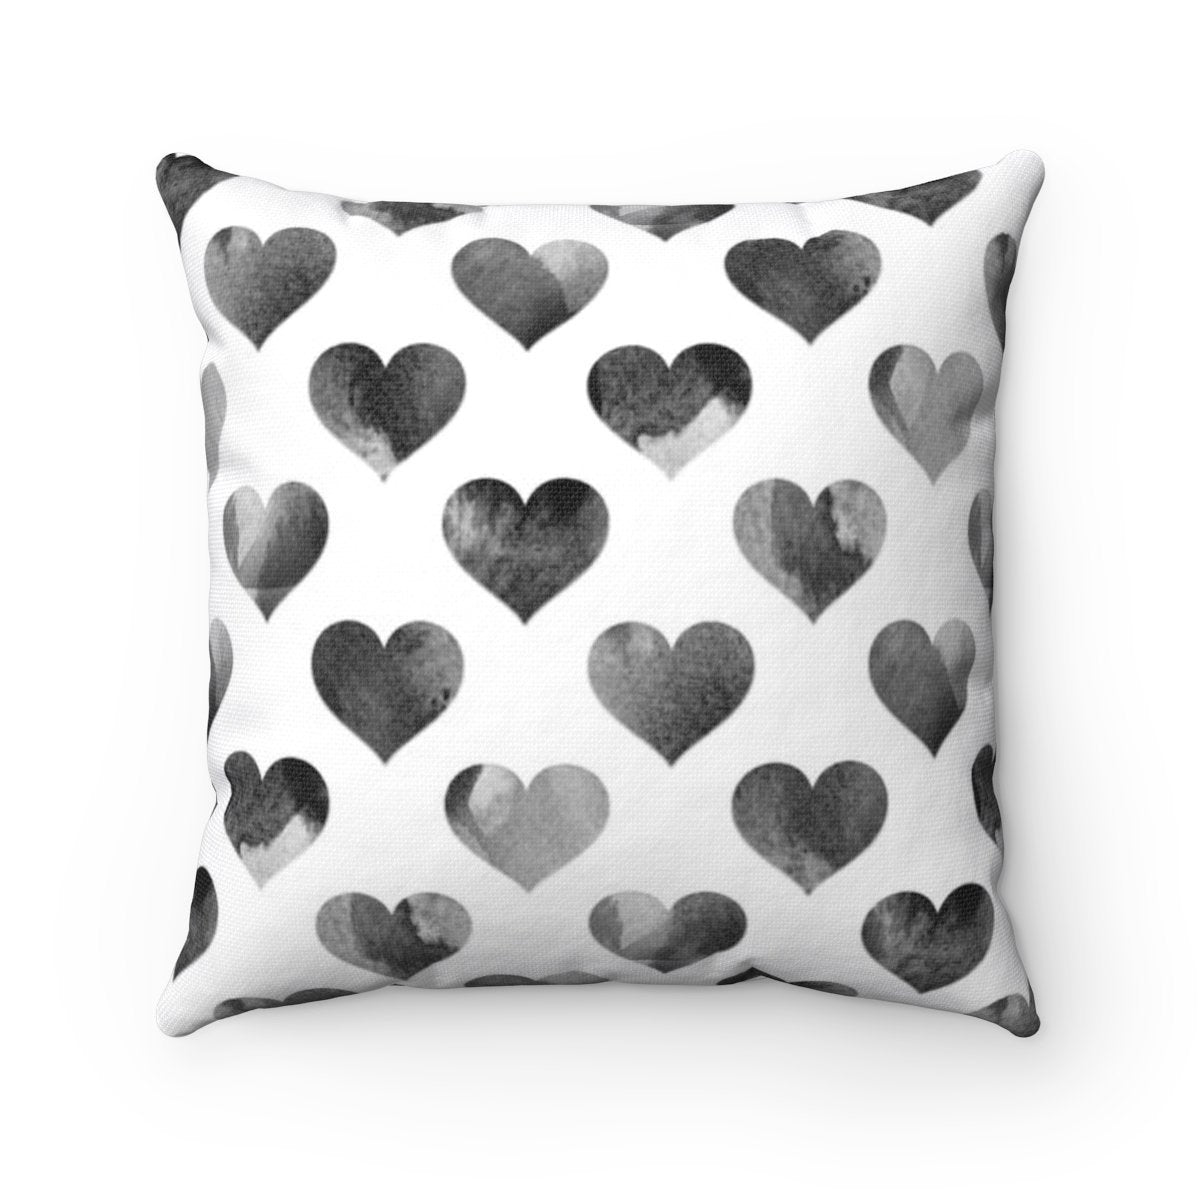 Black hearts Valentine decorative cushion cover for girls-Home Decor - Decorative Accents - Pillows & Throws - Decorative Pillows-Maison d'Elite-Très Elite